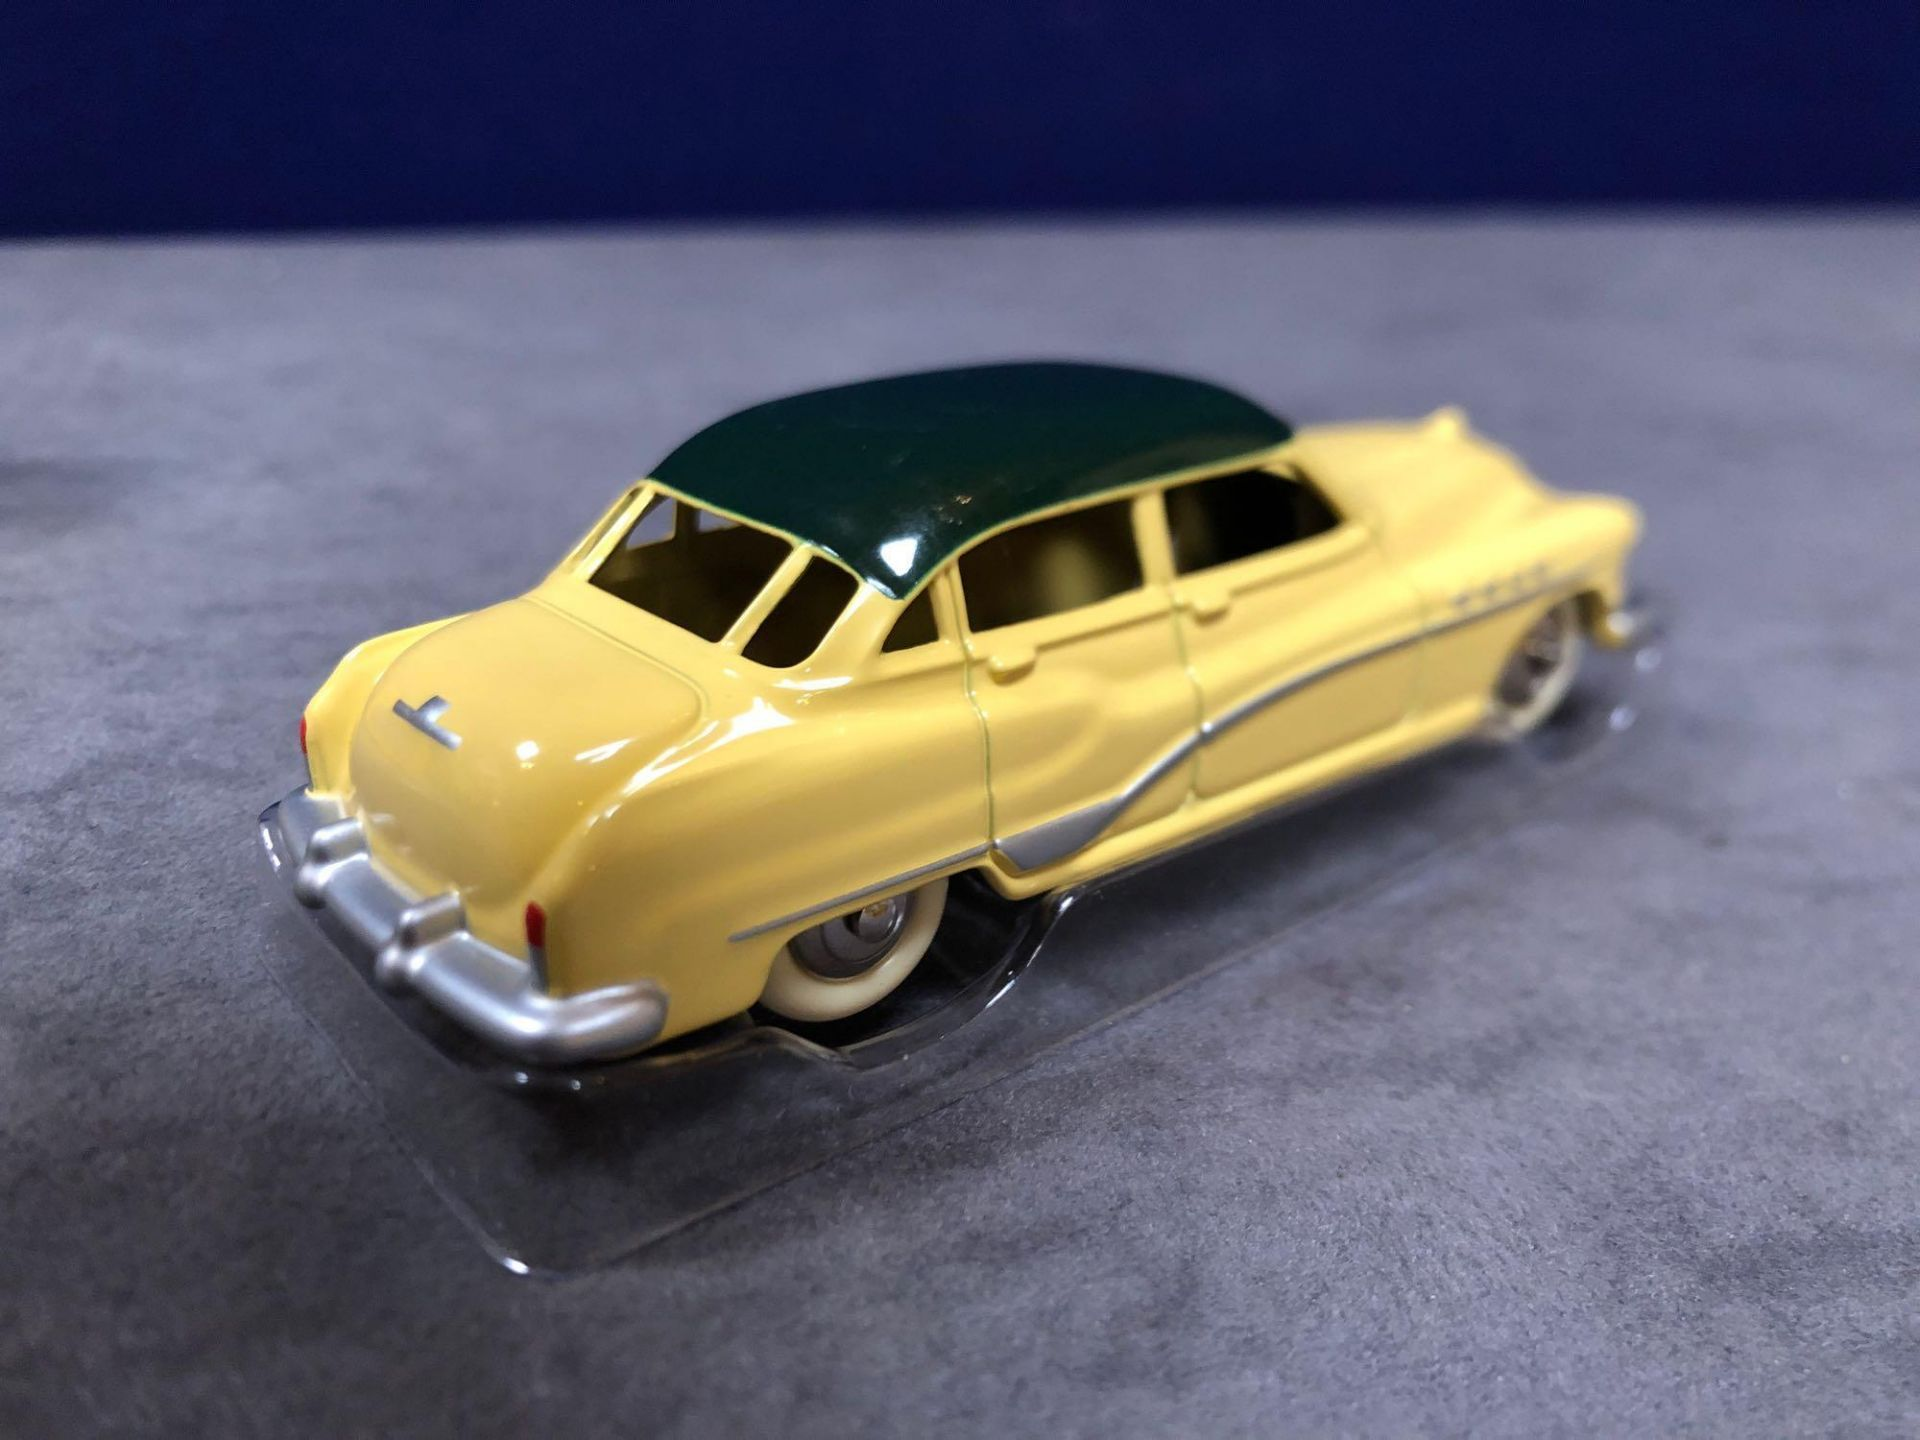 Dinky (Norev Edition) Diecast #24V Buick Road Master Mint In A Sealed Box 1954-1956 - Image 2 of 2